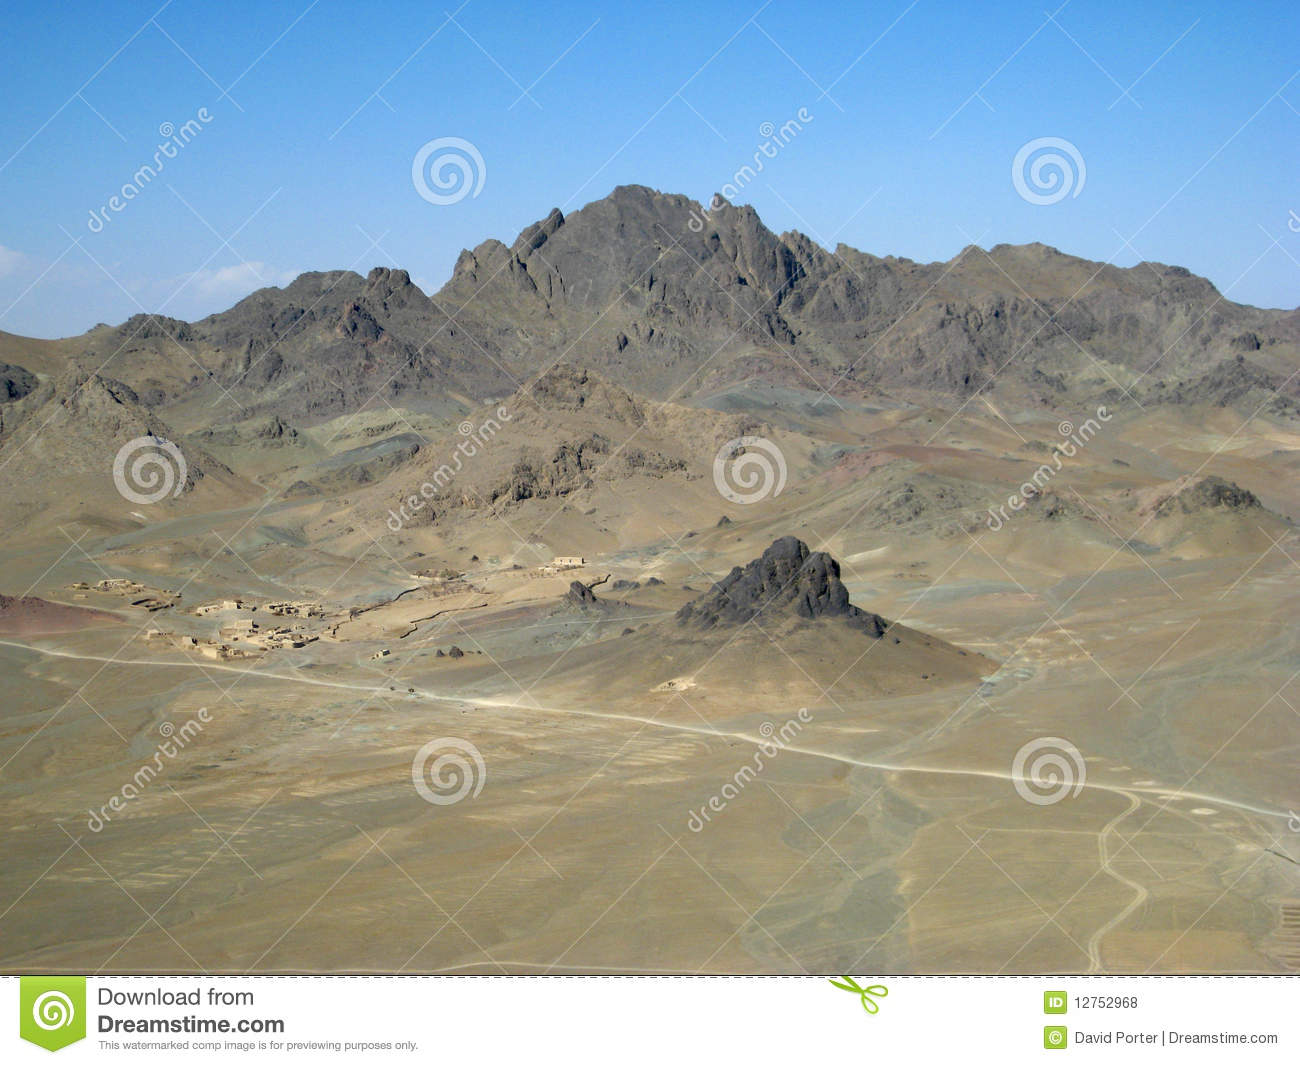 A Desolate Village in Southern Afghanistan